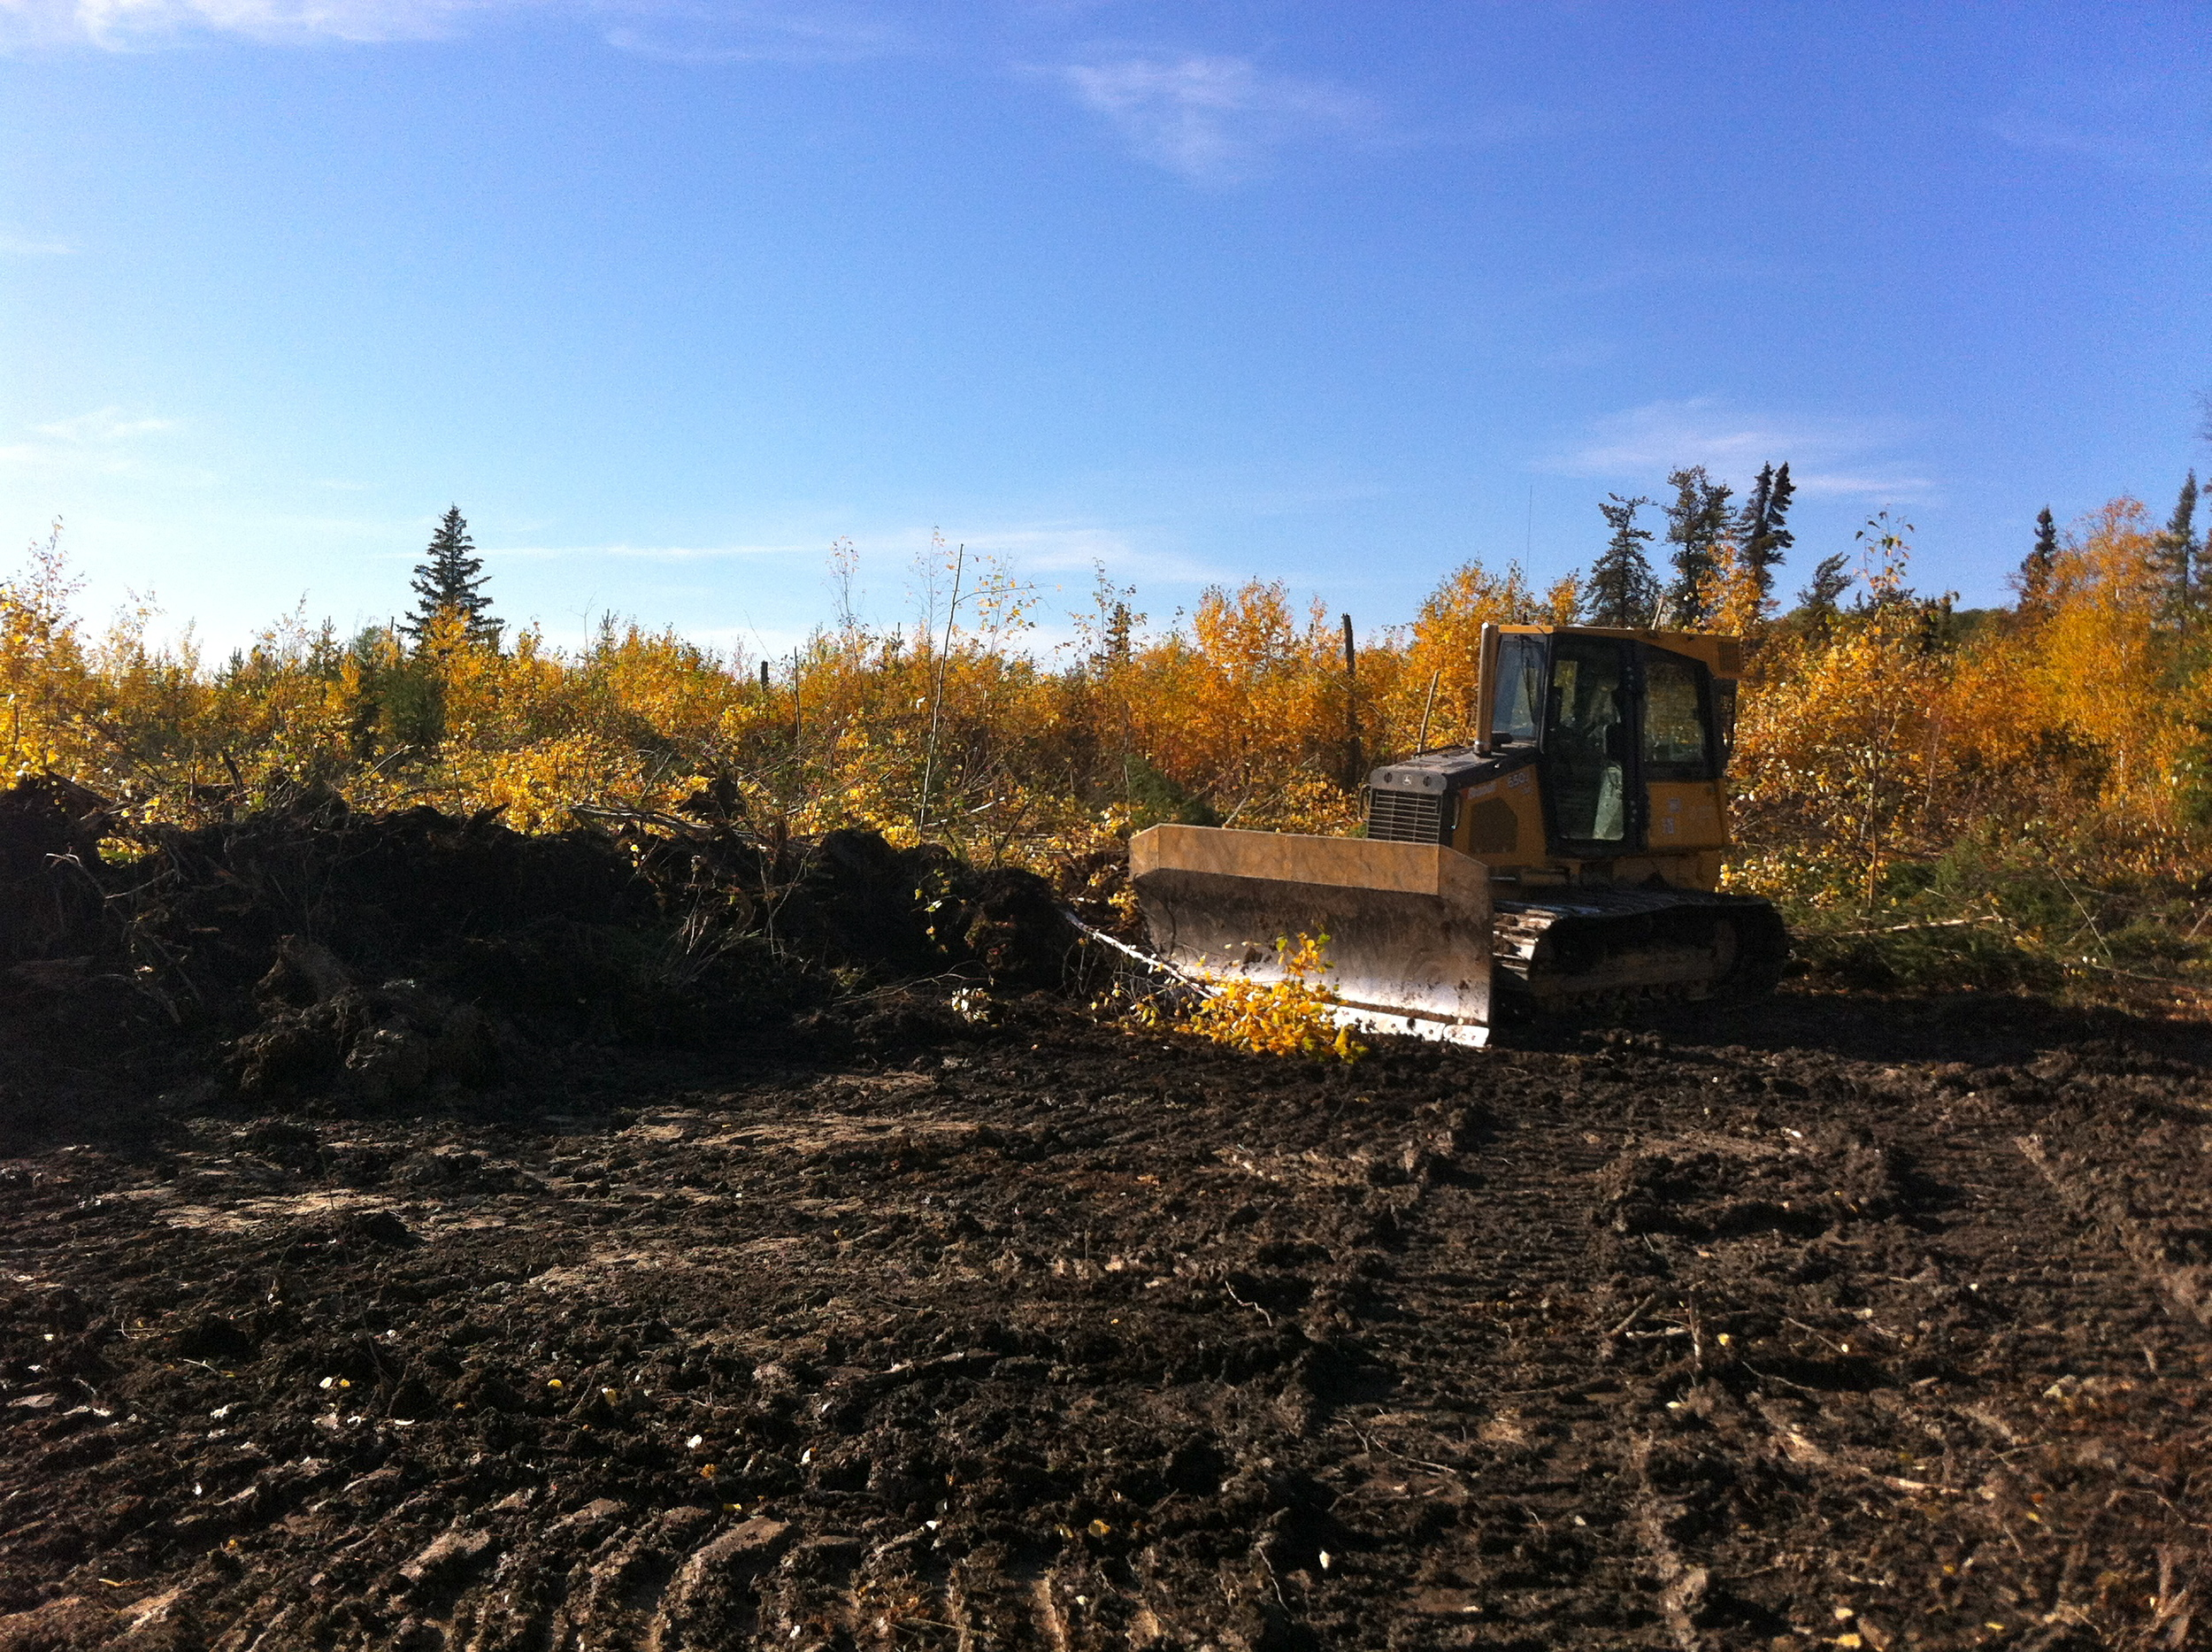 Clearing the land for the Meechim Farm. It may not look like much now, but come back next August and check us out!